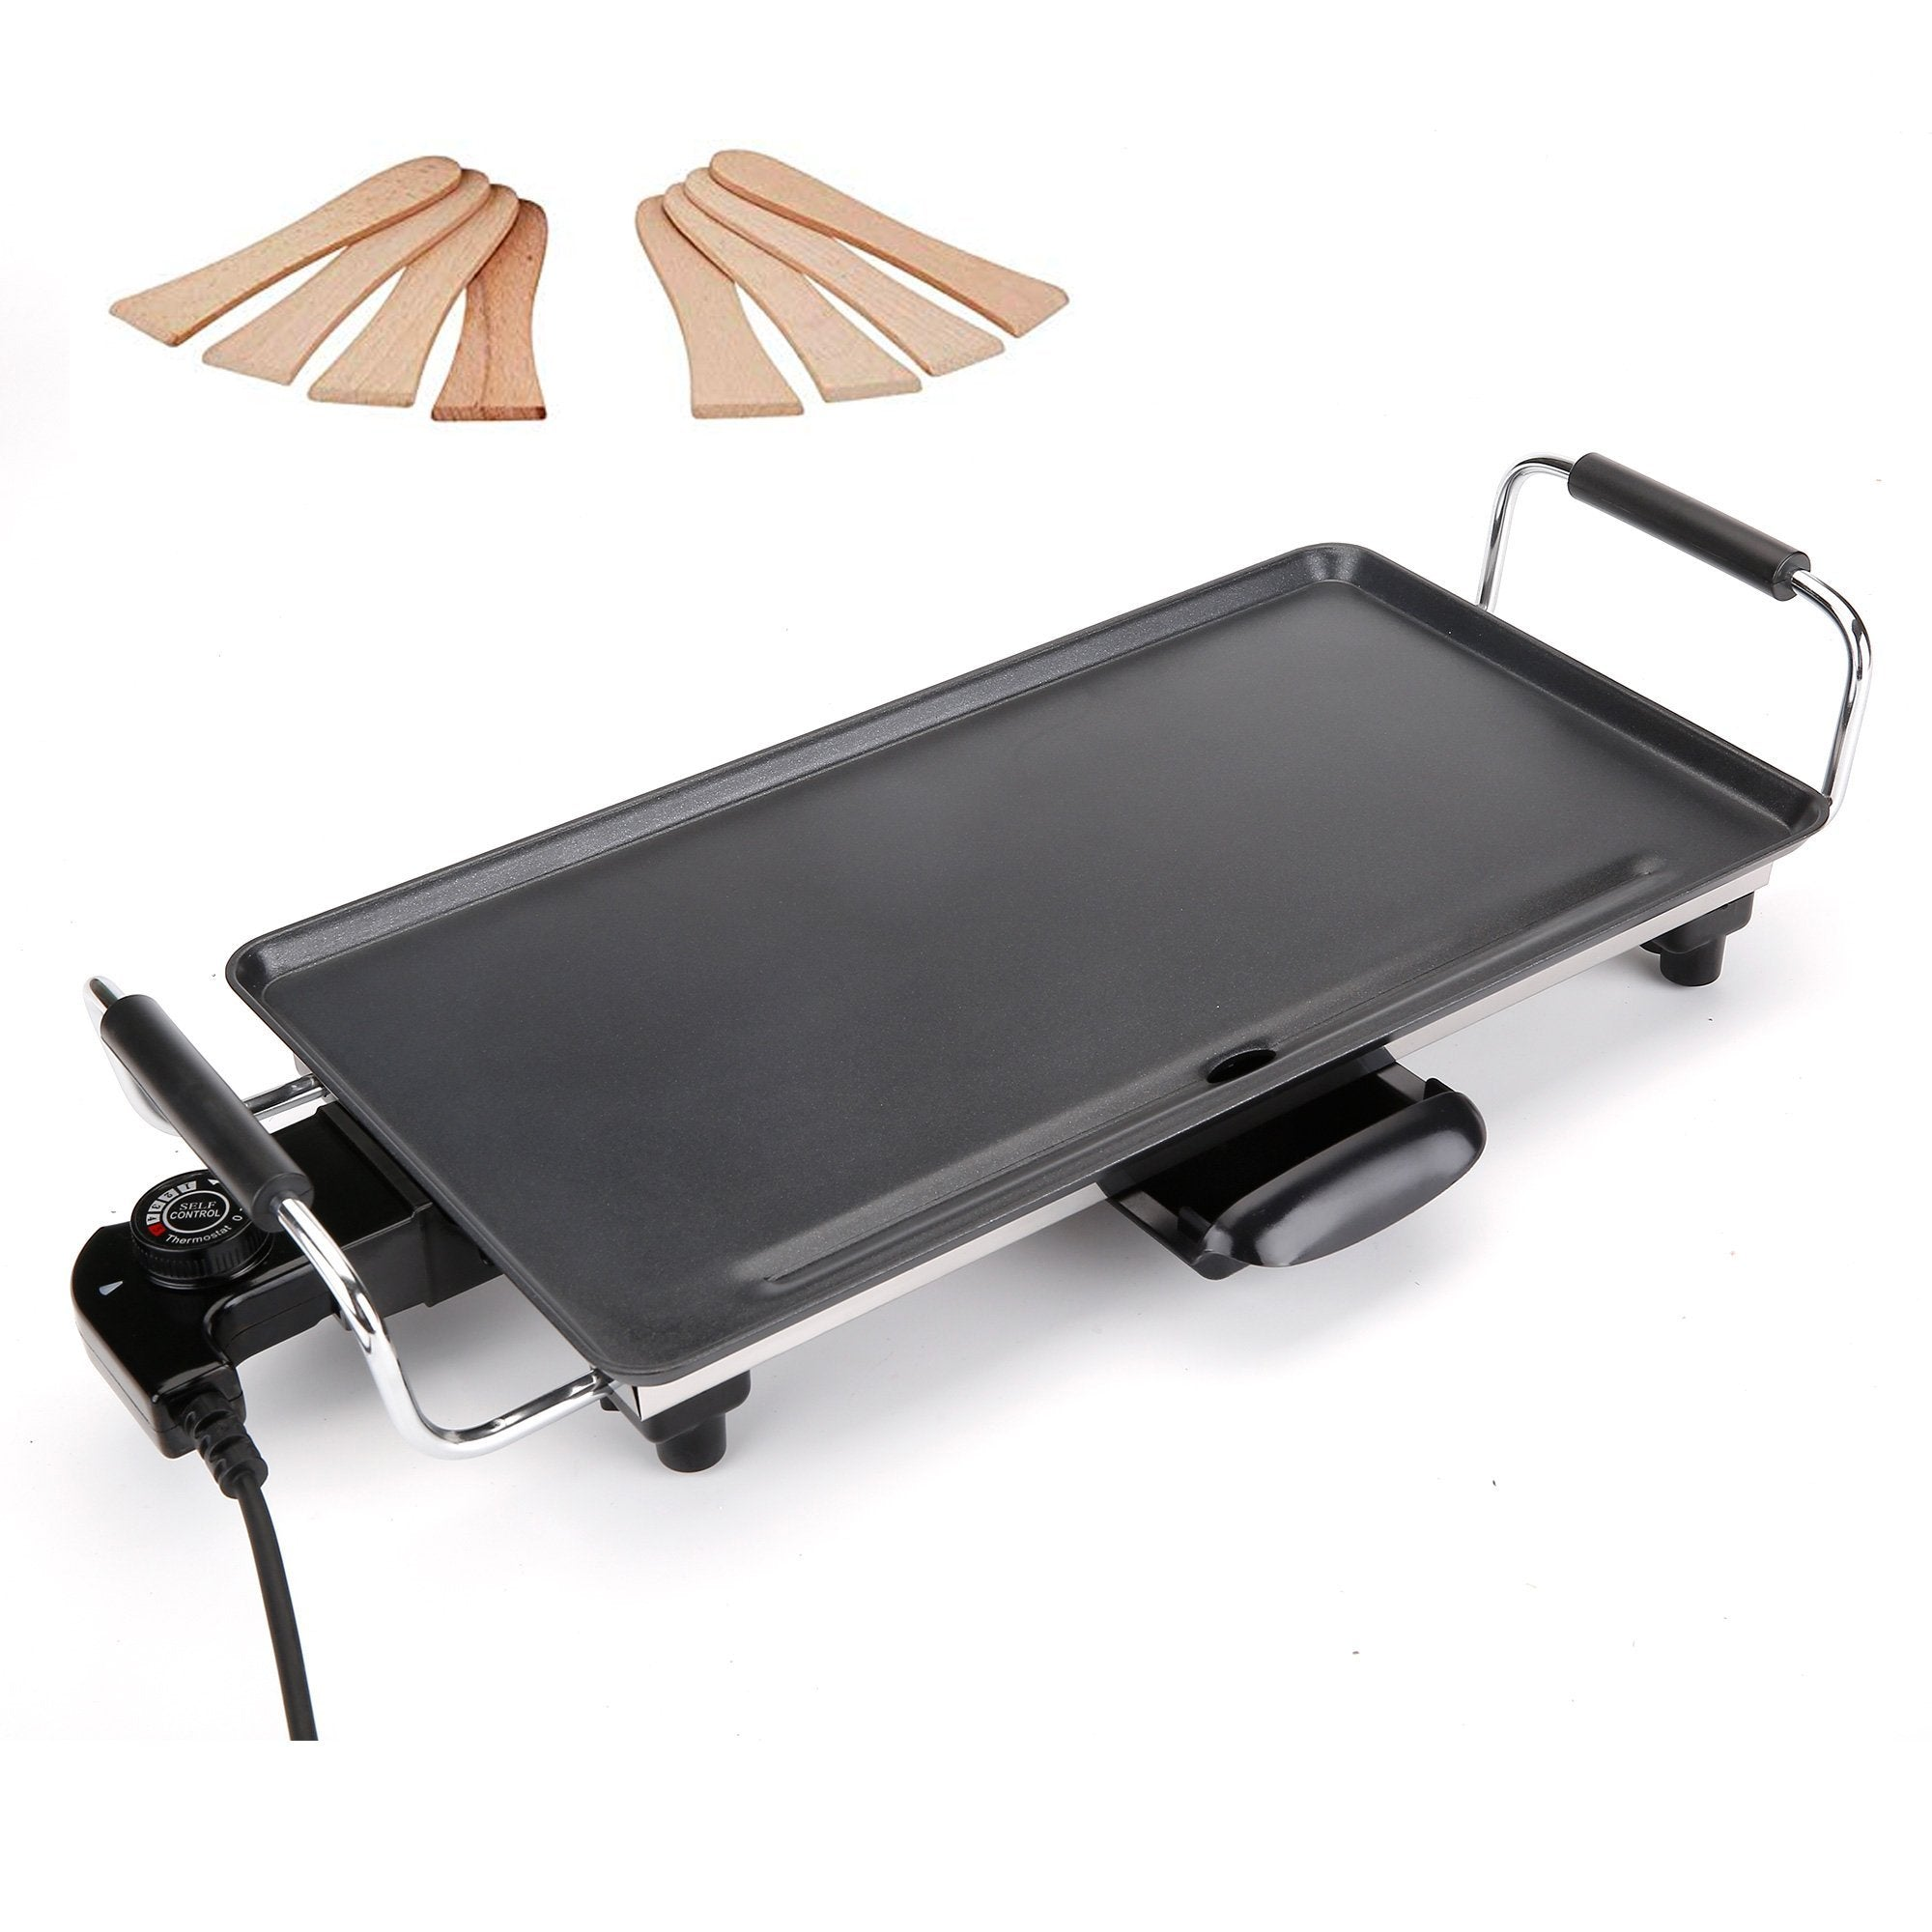 "The ""Teppantastic"" Electric Teppanyaki Grill"